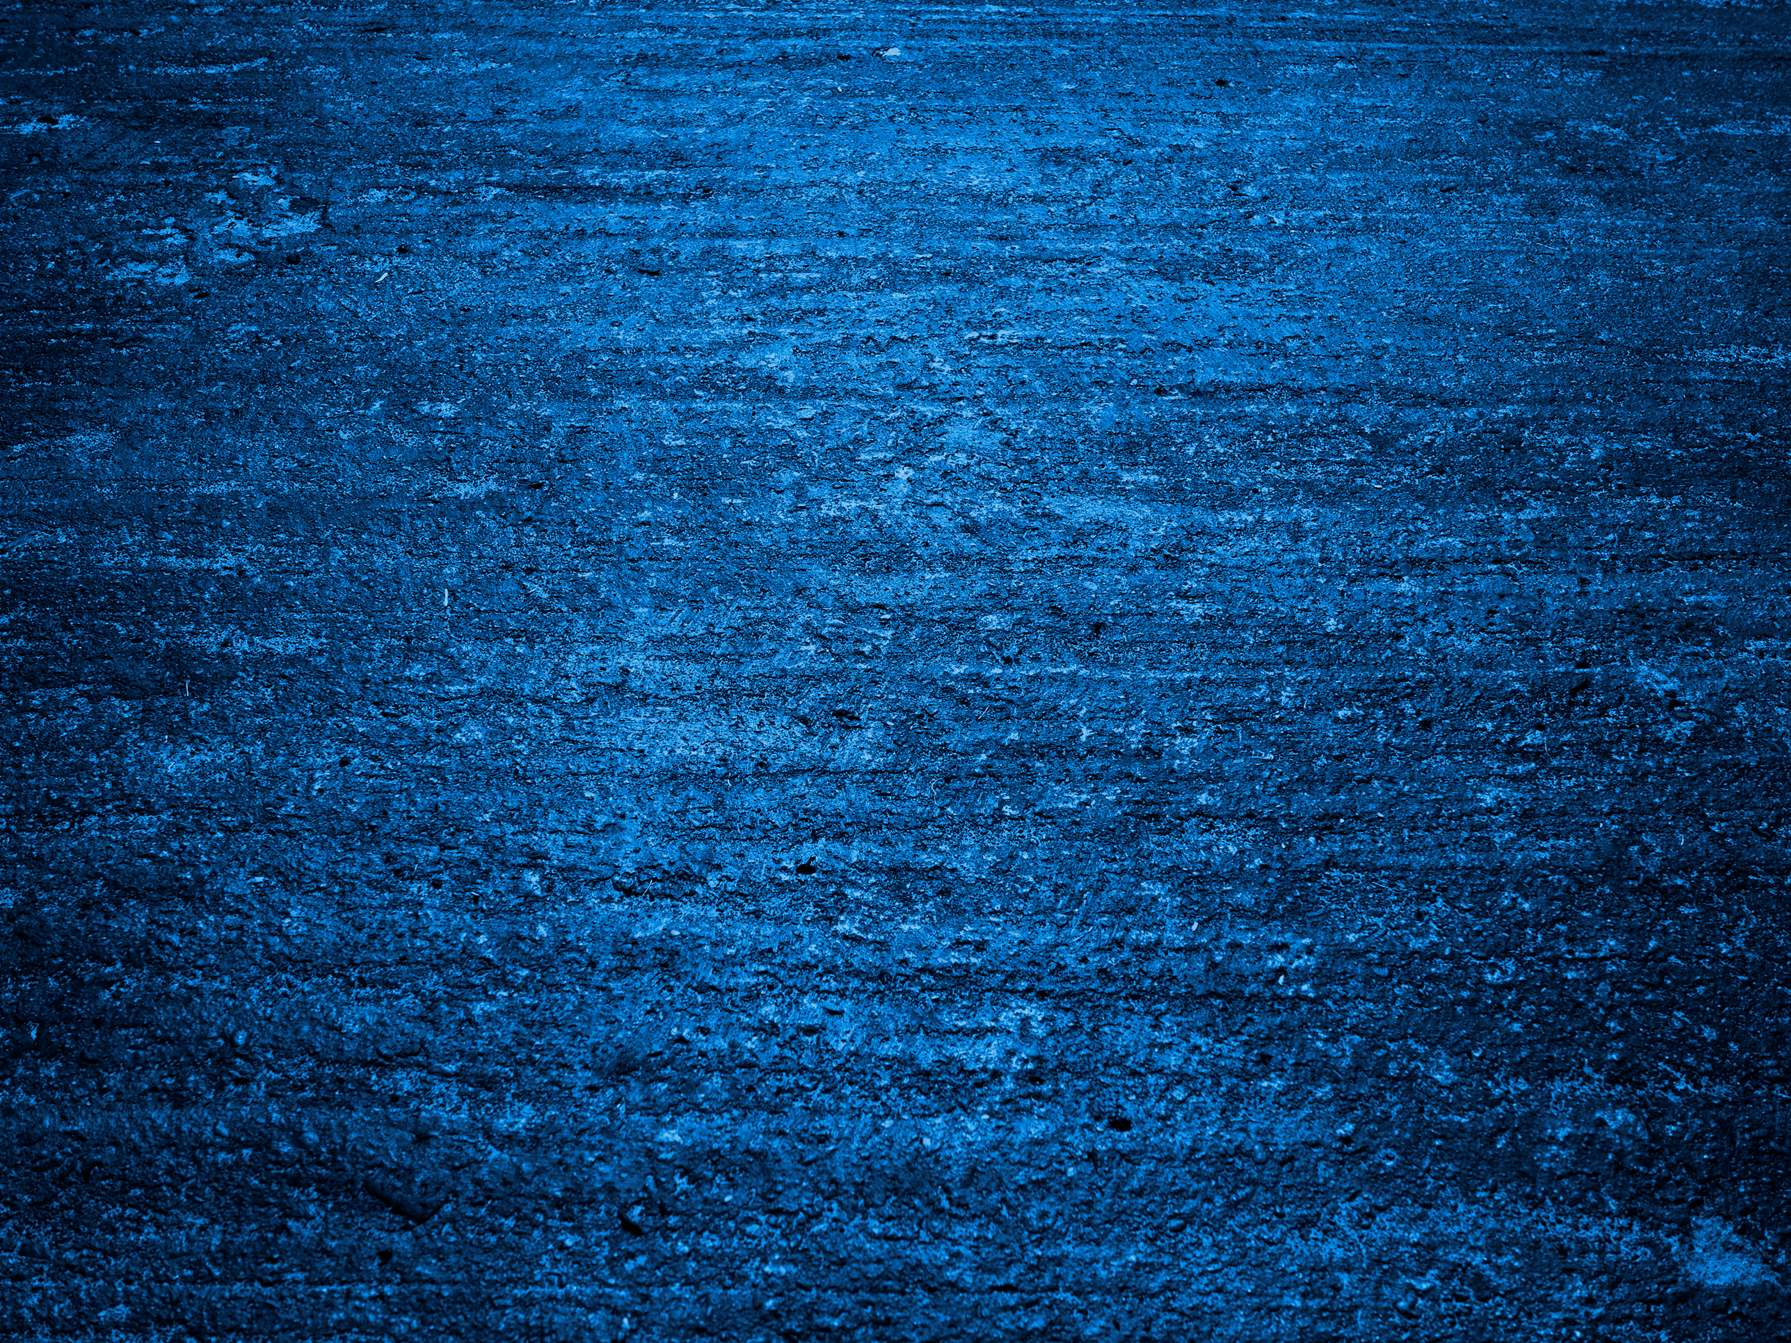 Dark Blue Grungy Concrete Texture Background - PhotoHDX